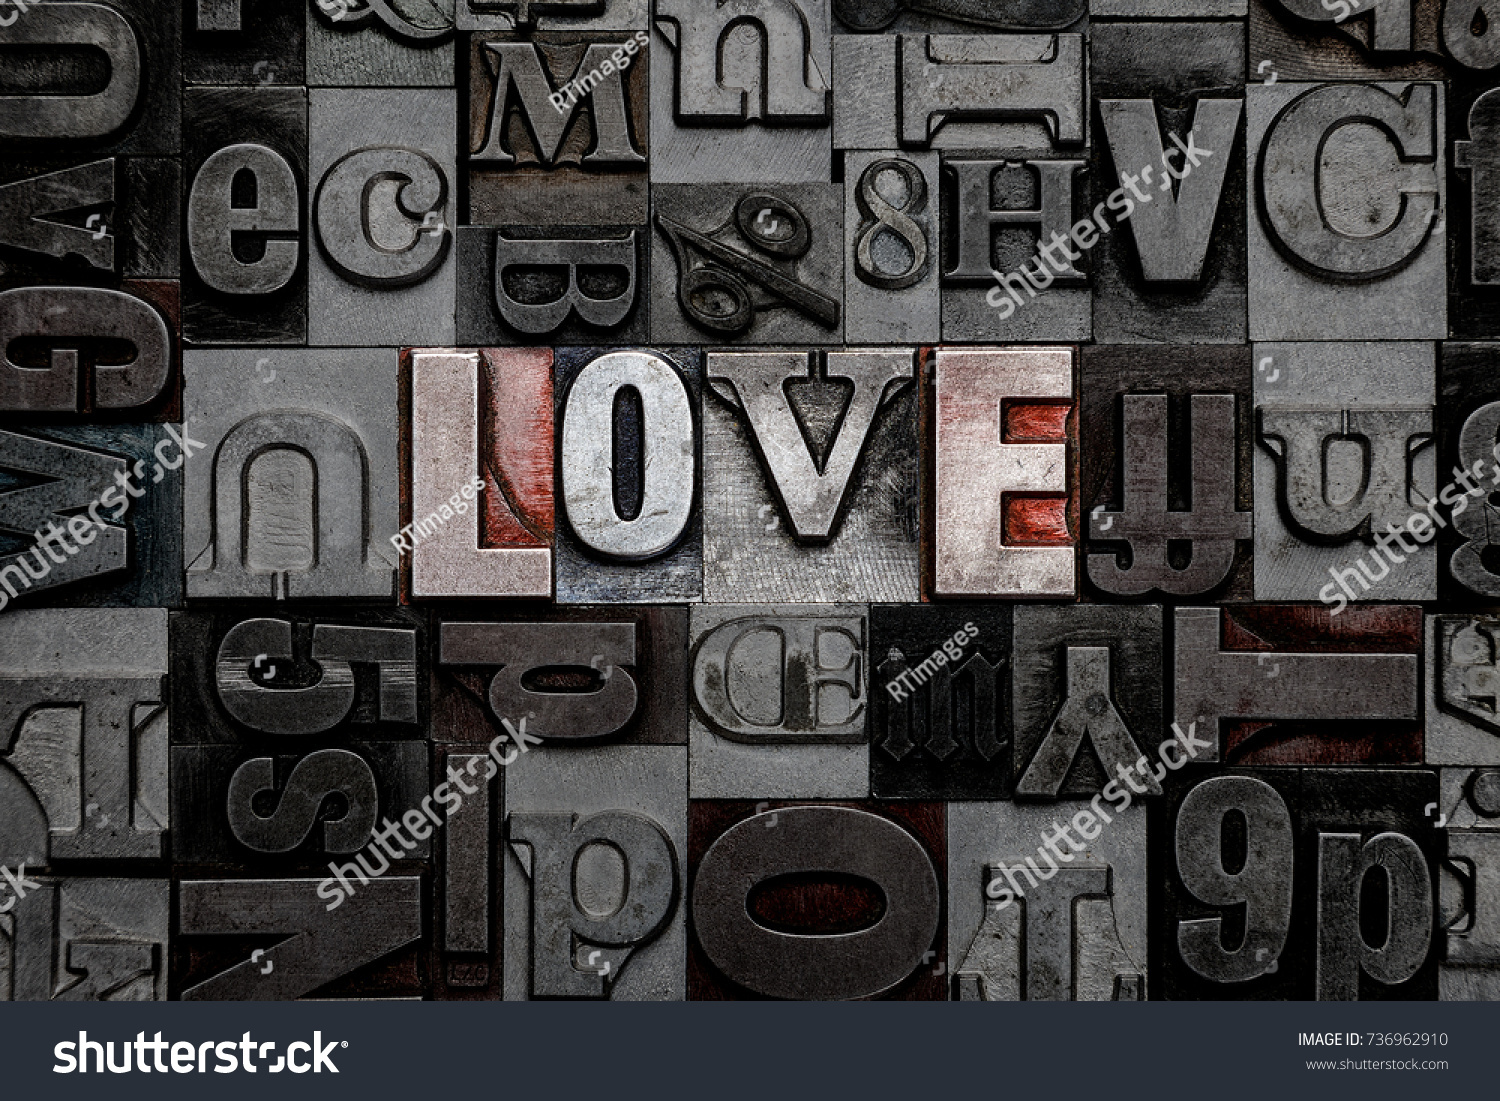 Old Metal Letters Word Love Made Old Metal Letterpress Stock Photo 736962910